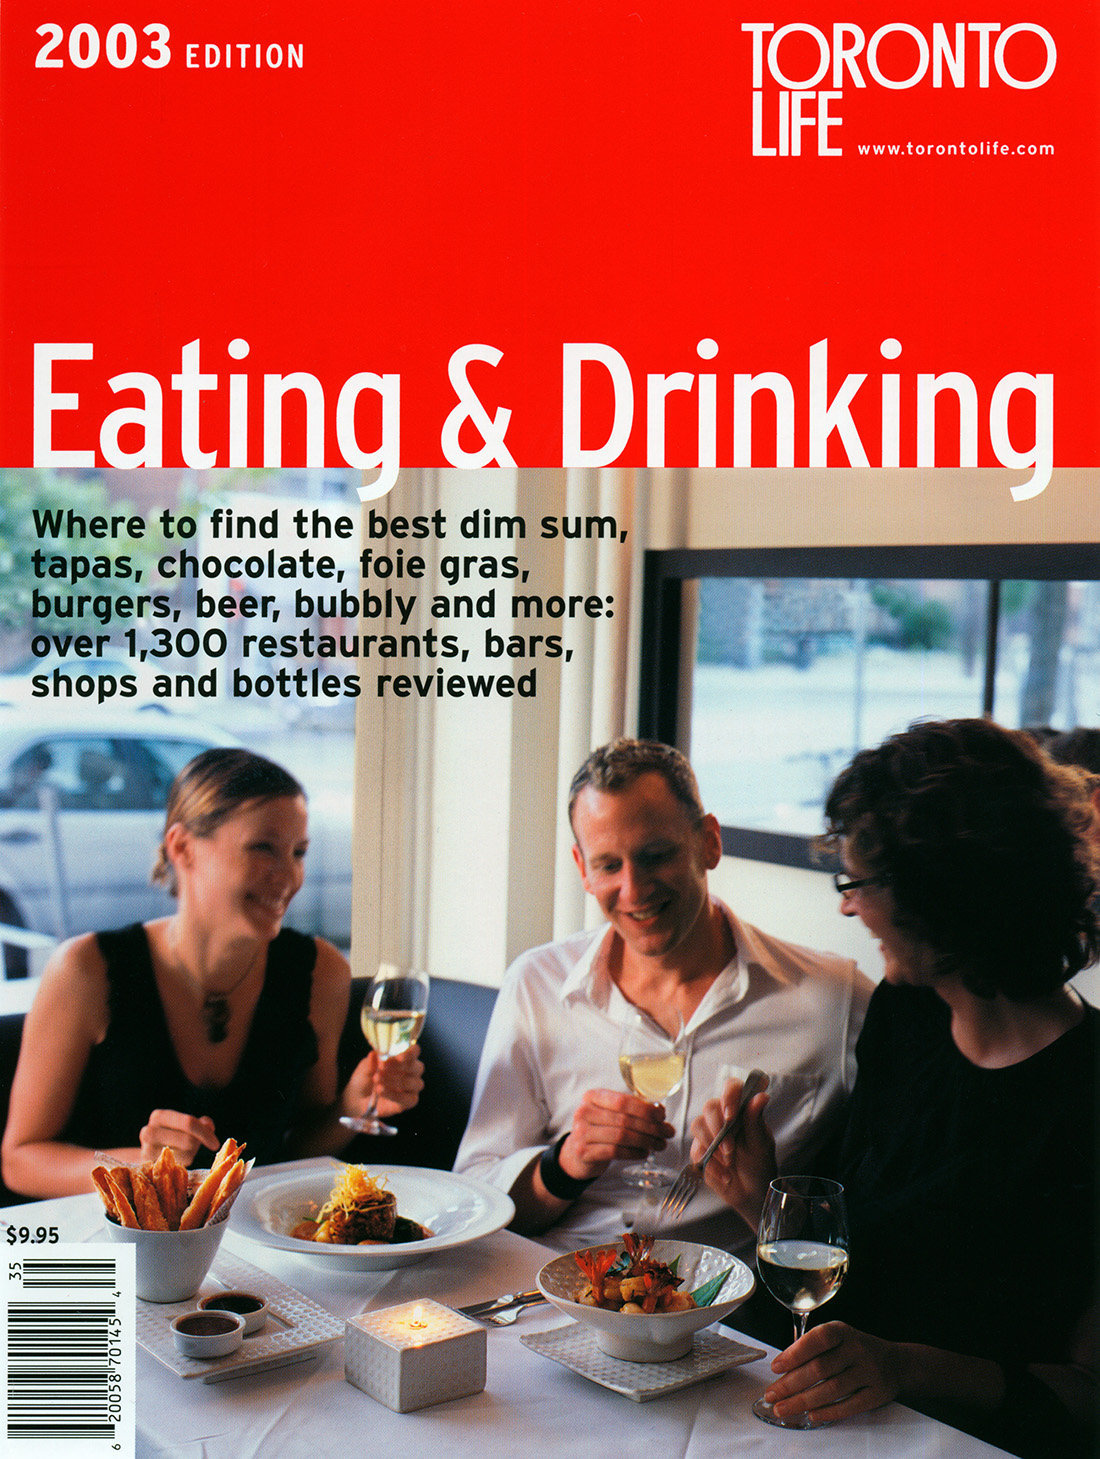 Toronto Life Eating & Drinking Guide